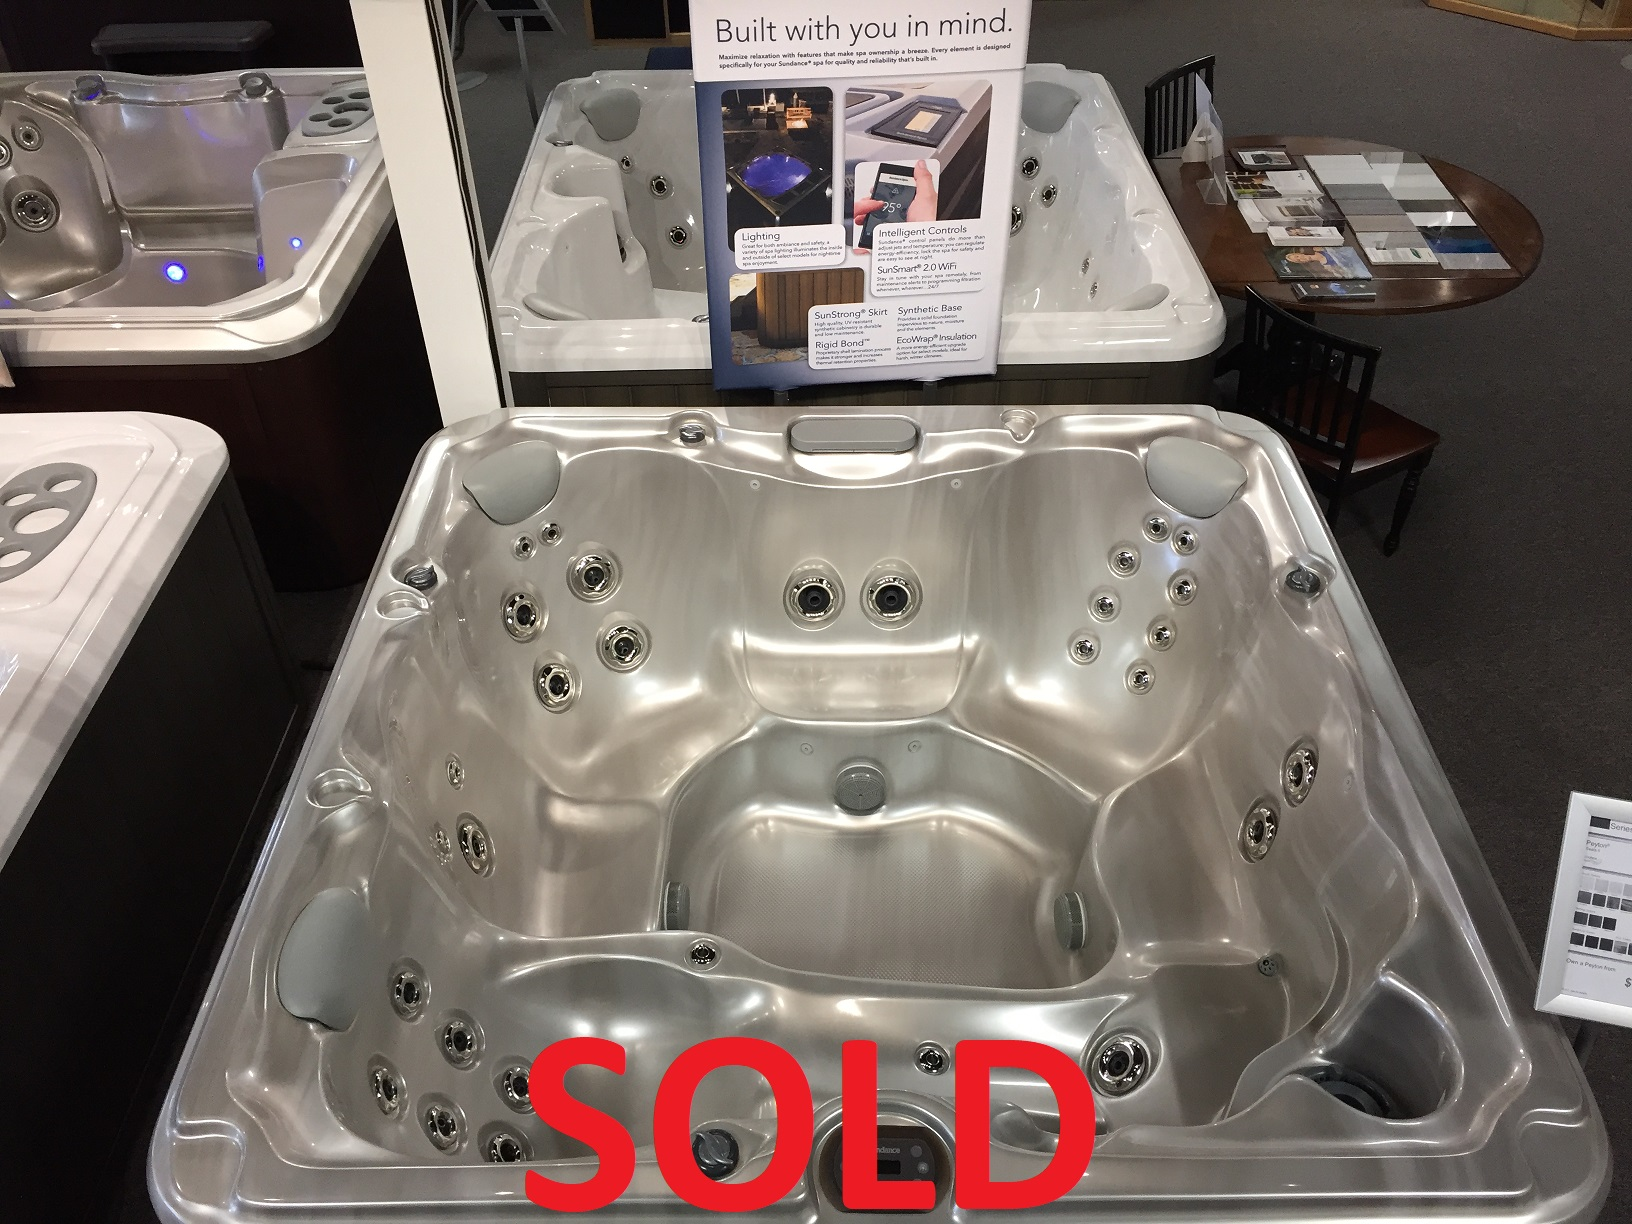 Sundance Spas hot tub clearance sale hot tubs spa jacuzzis whirlpool Vaughan Ontario